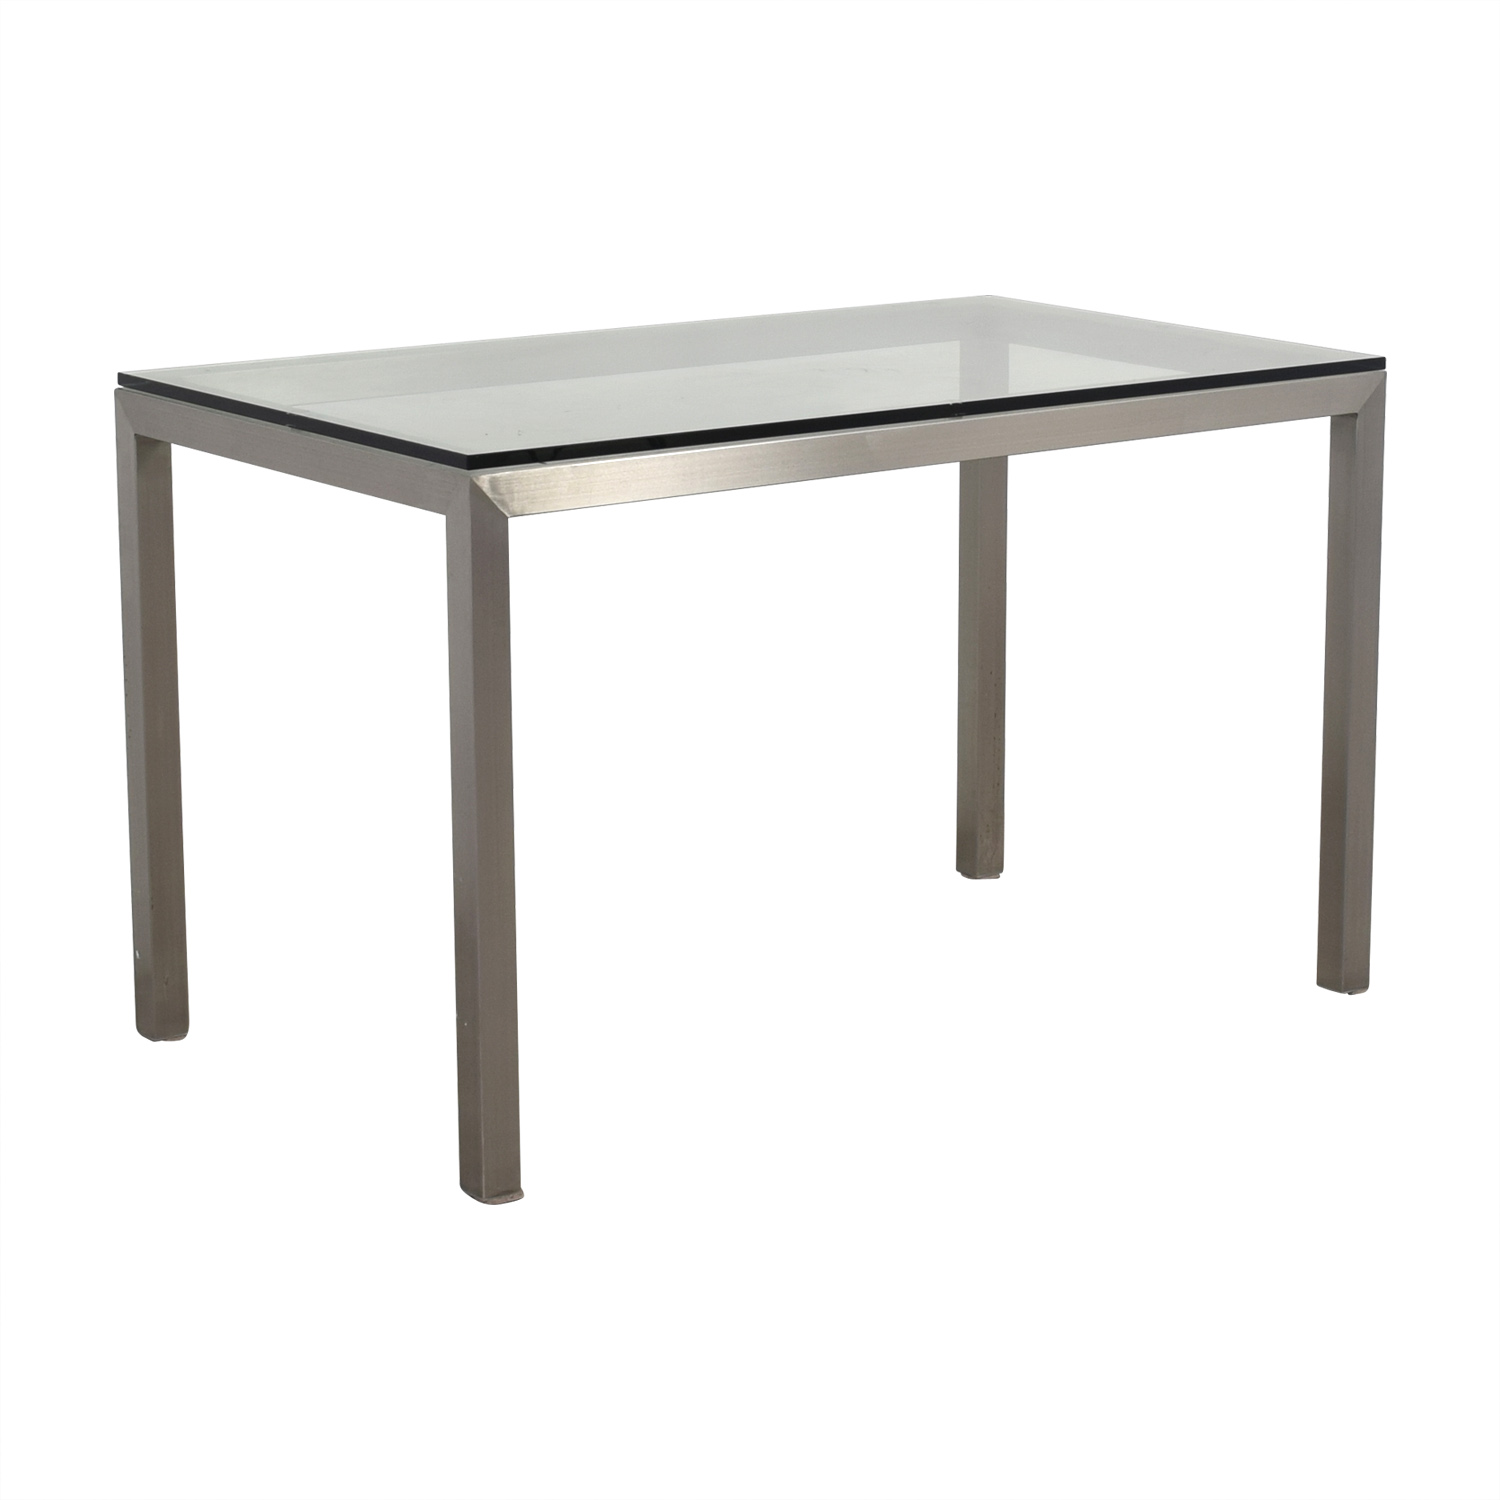 Crate & Barrel Crate & Barrel Glass and Stainless Steel Dining Table second hand